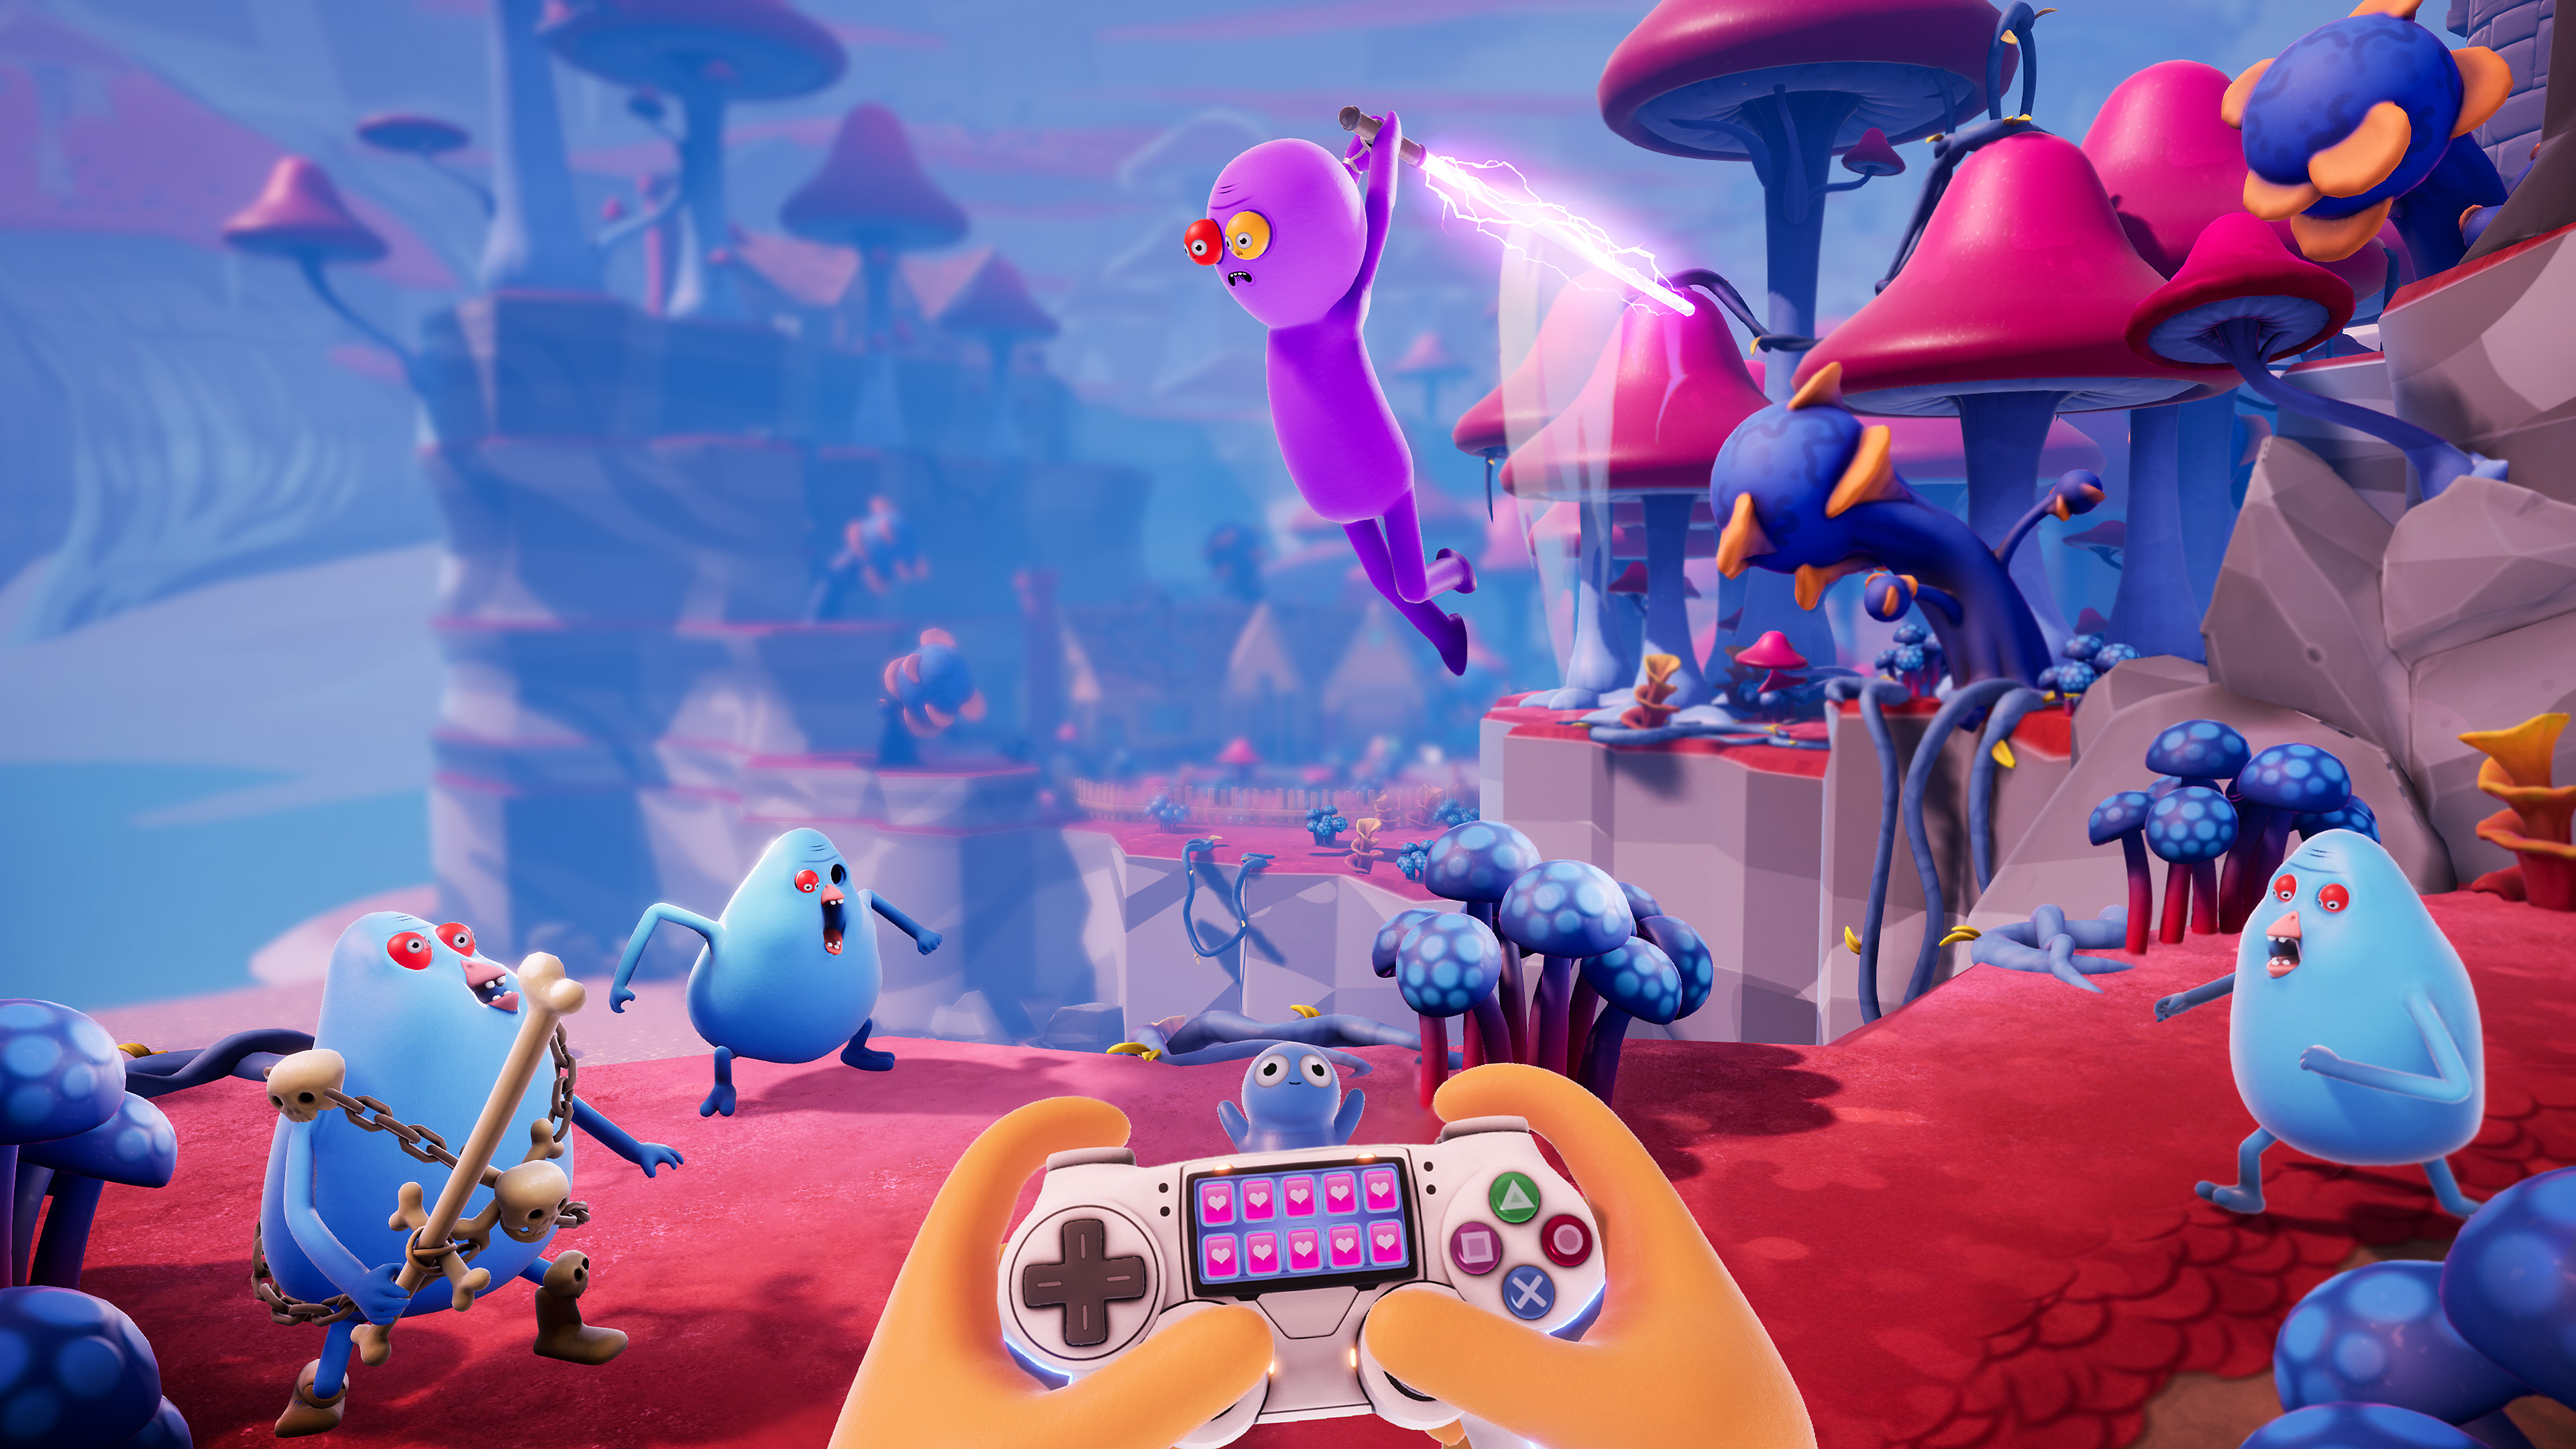 Captura de pantalla de Trover Saves the Universe - Trover se sumerge en la acción